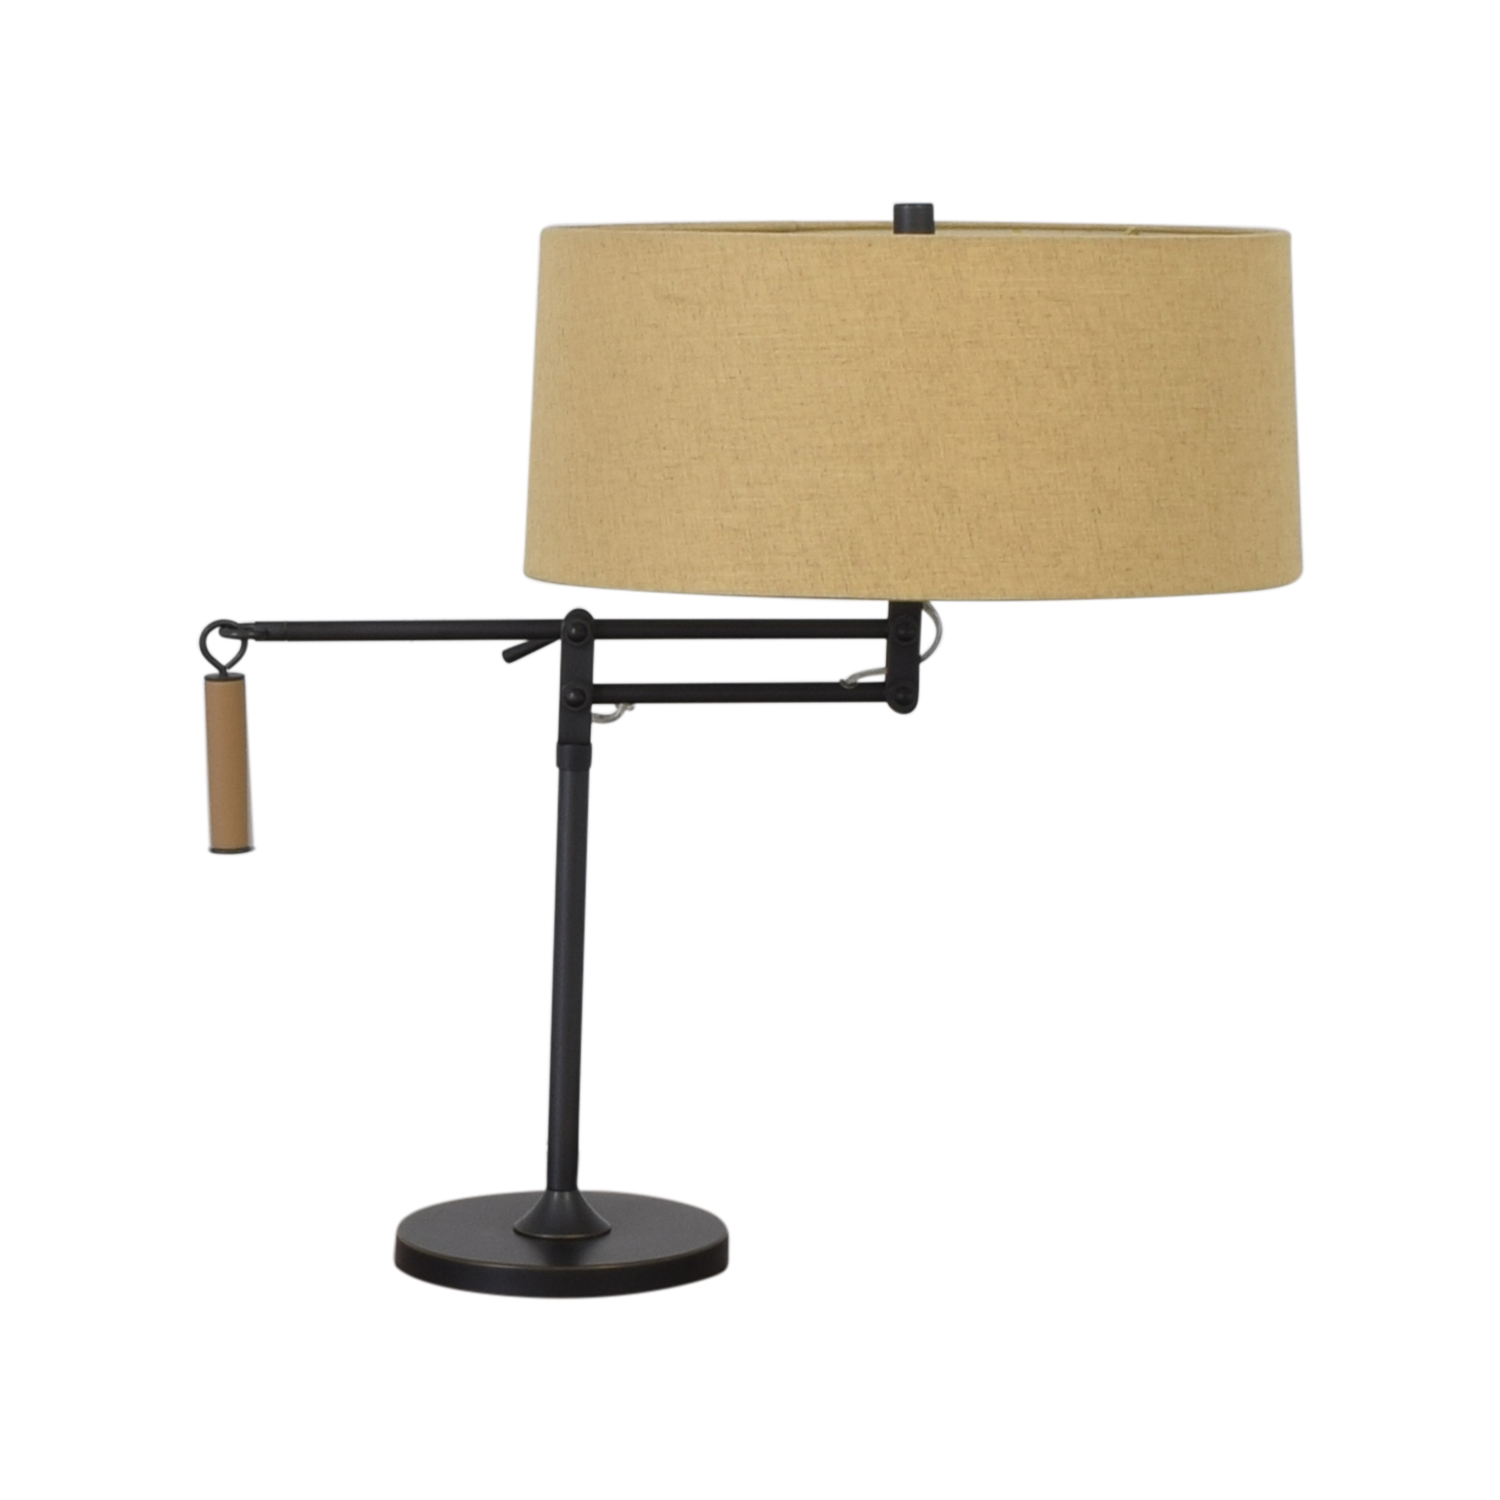 Crate & Barrel Crate & Barrel Autry Adjustable Table Lamp